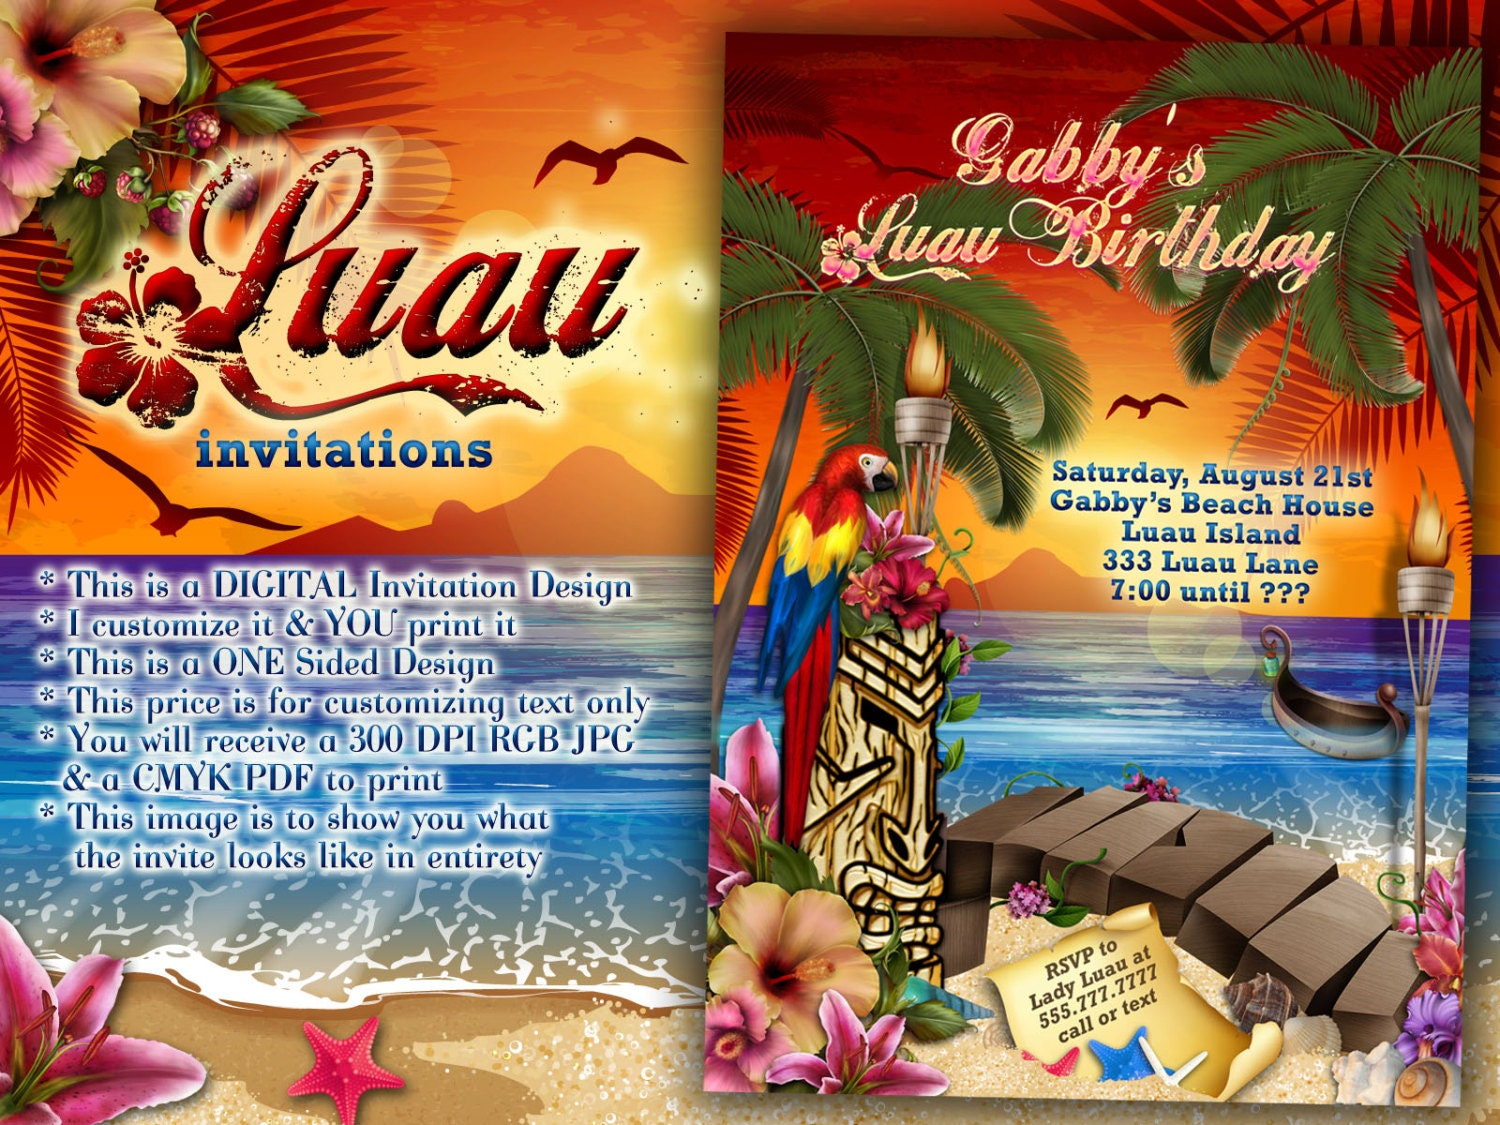 Luau Party Invitations Hawaiian Theme Beach Birthday